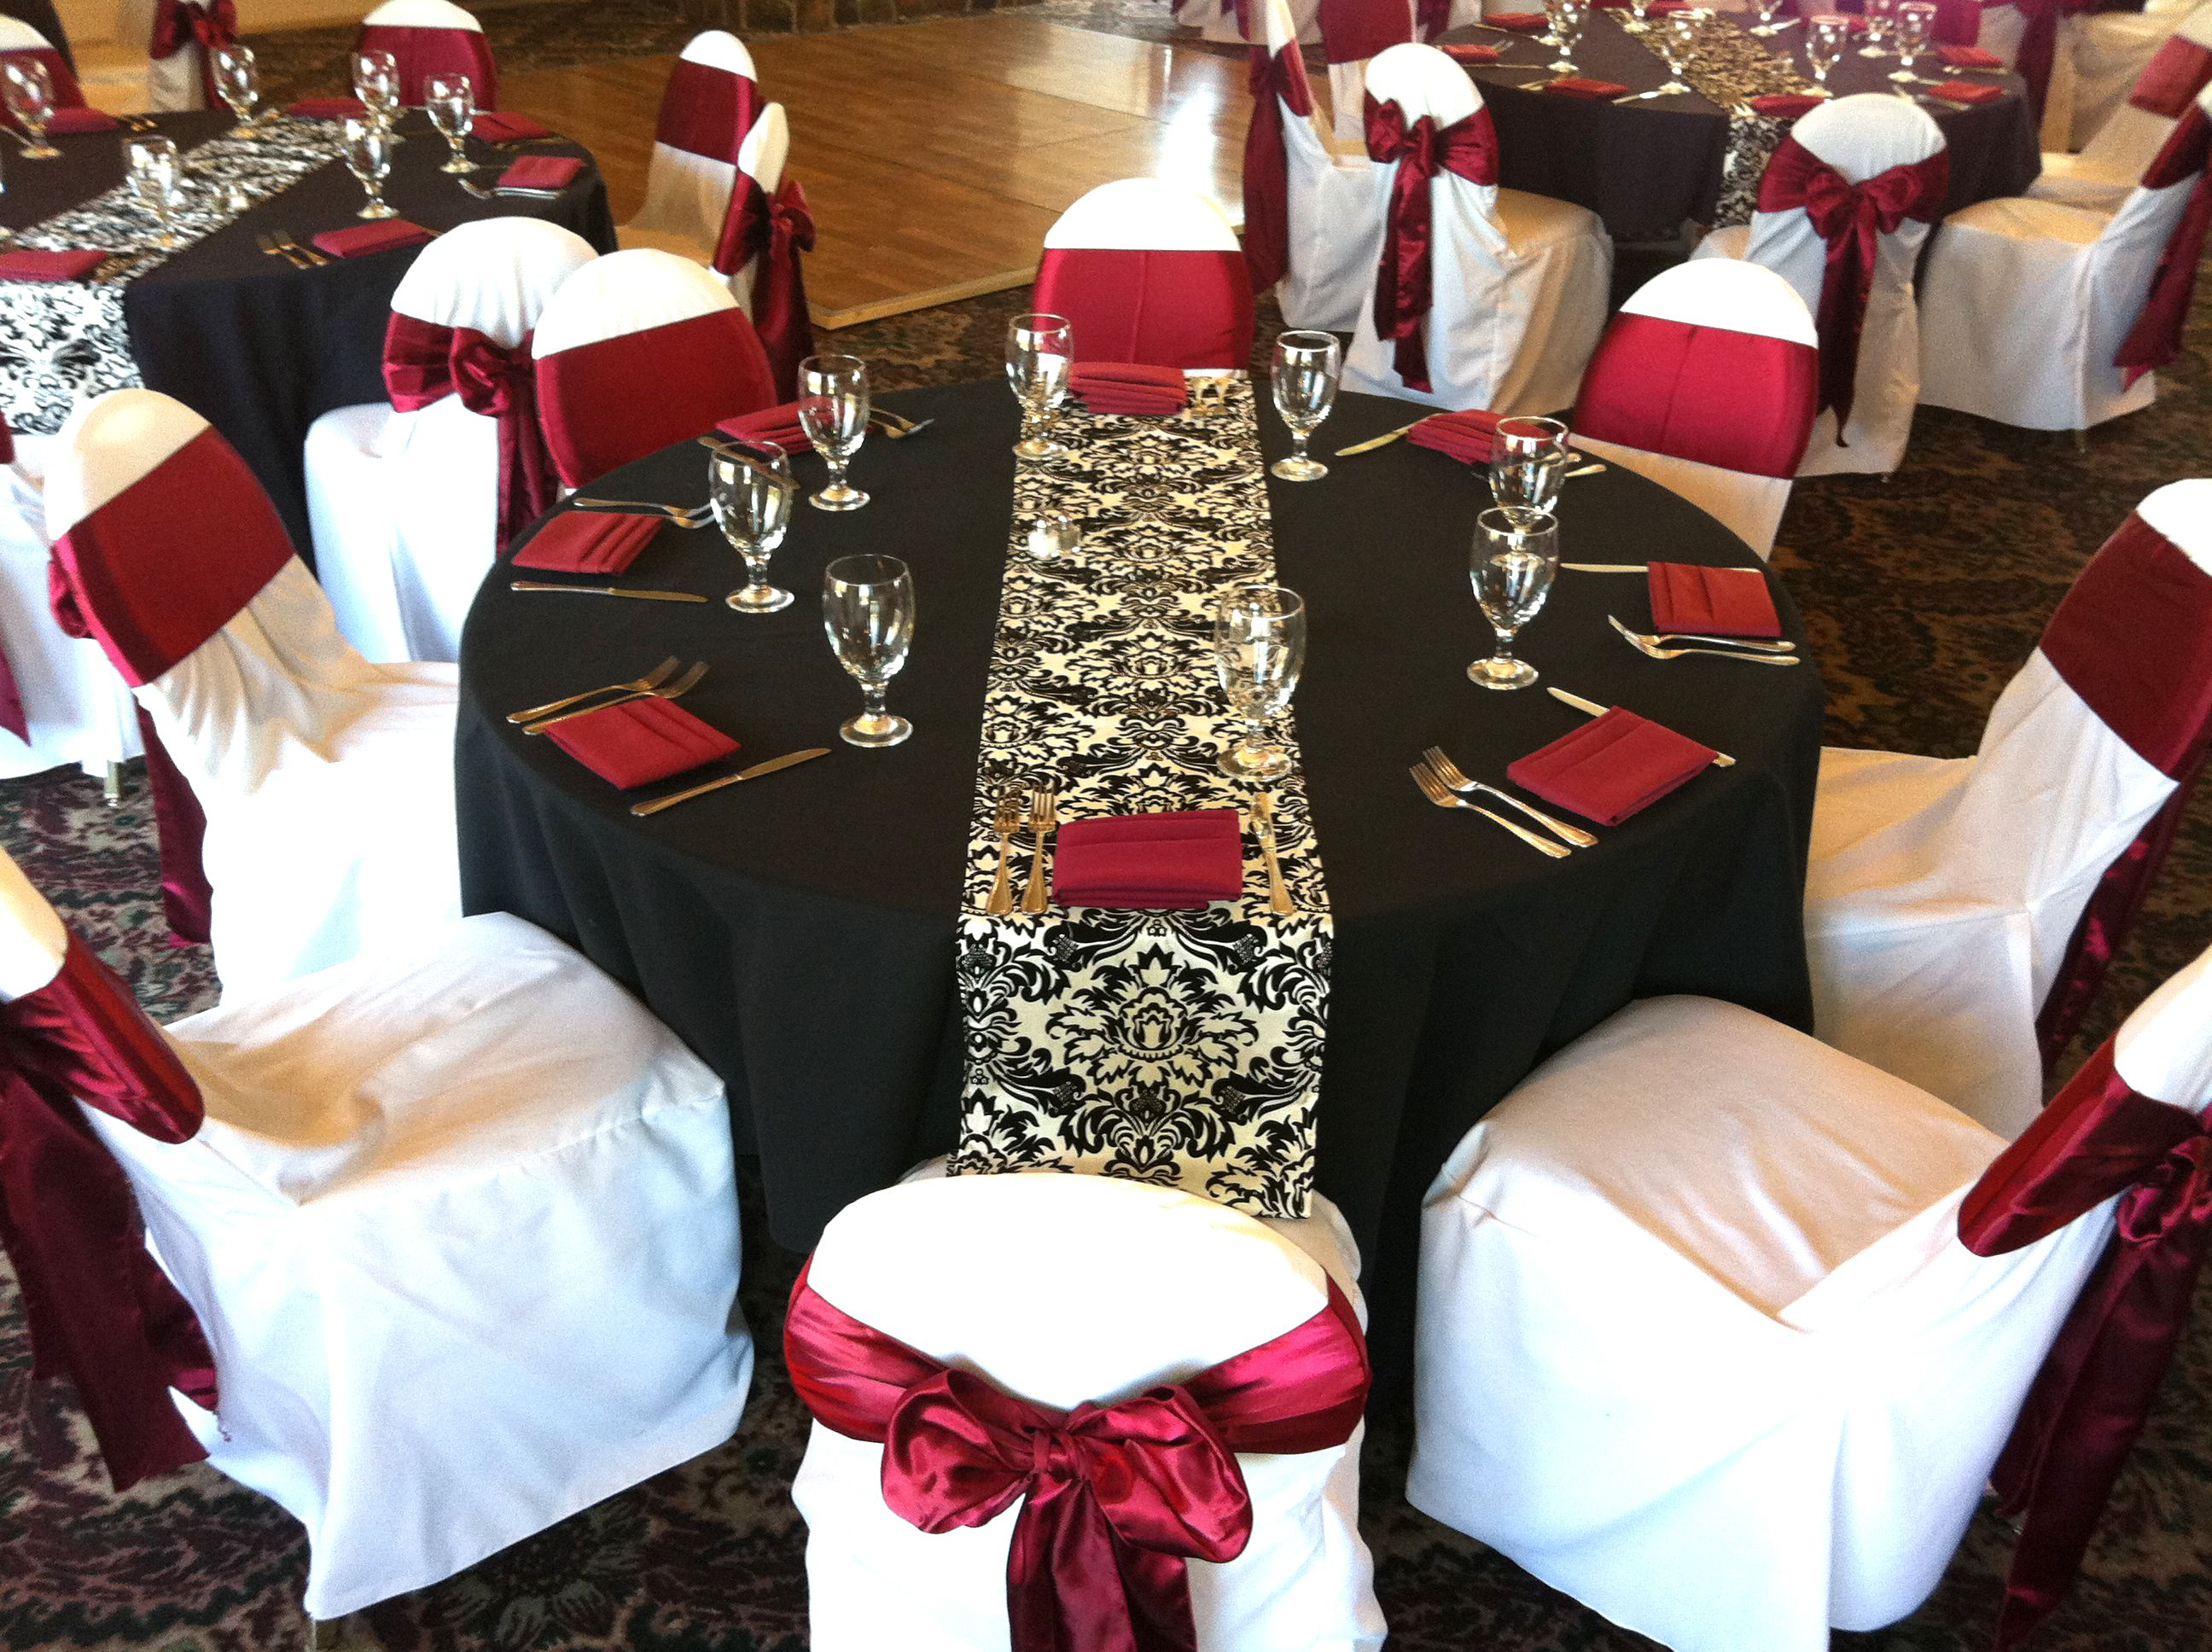 Wedding Themes In Black And Dark Red Black Table Cloths With